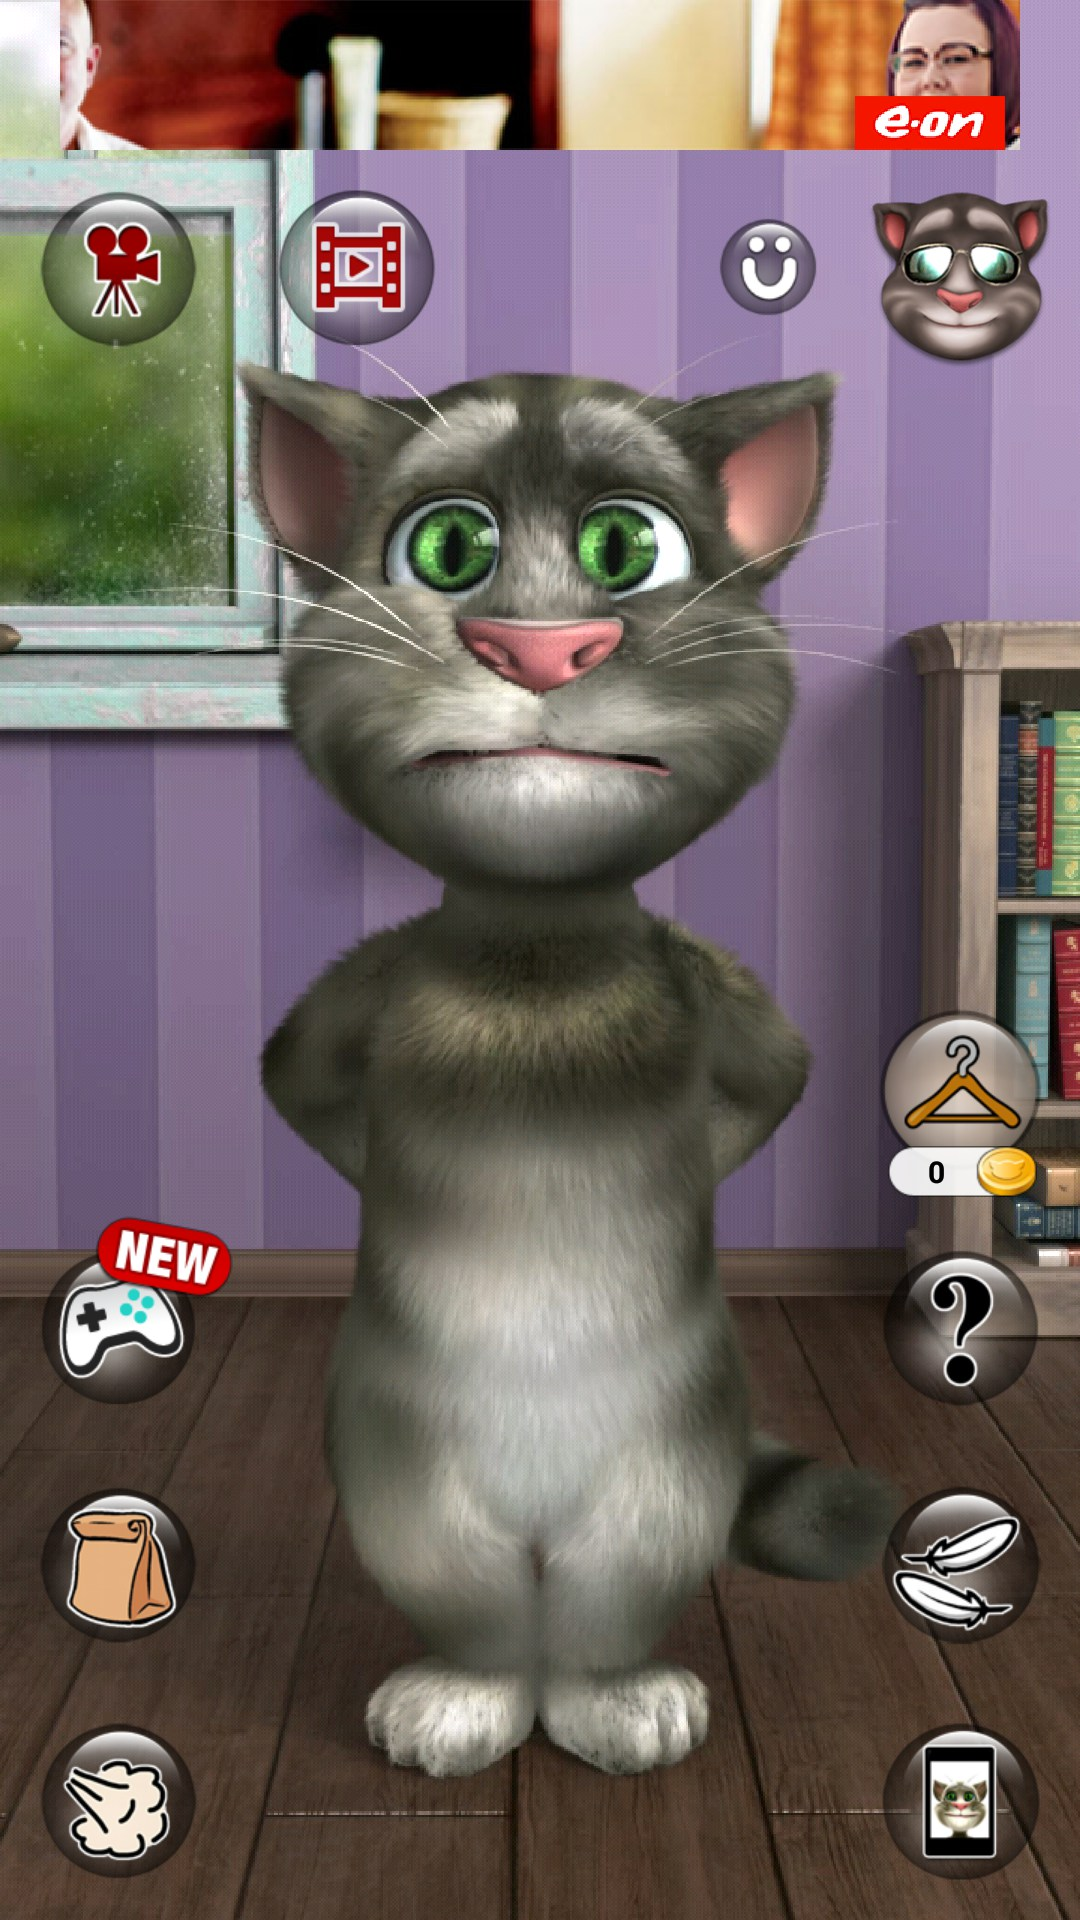 Phone Talking Tom For Android Phone talking tom cat 2 for xiaomi redmi note free download games note